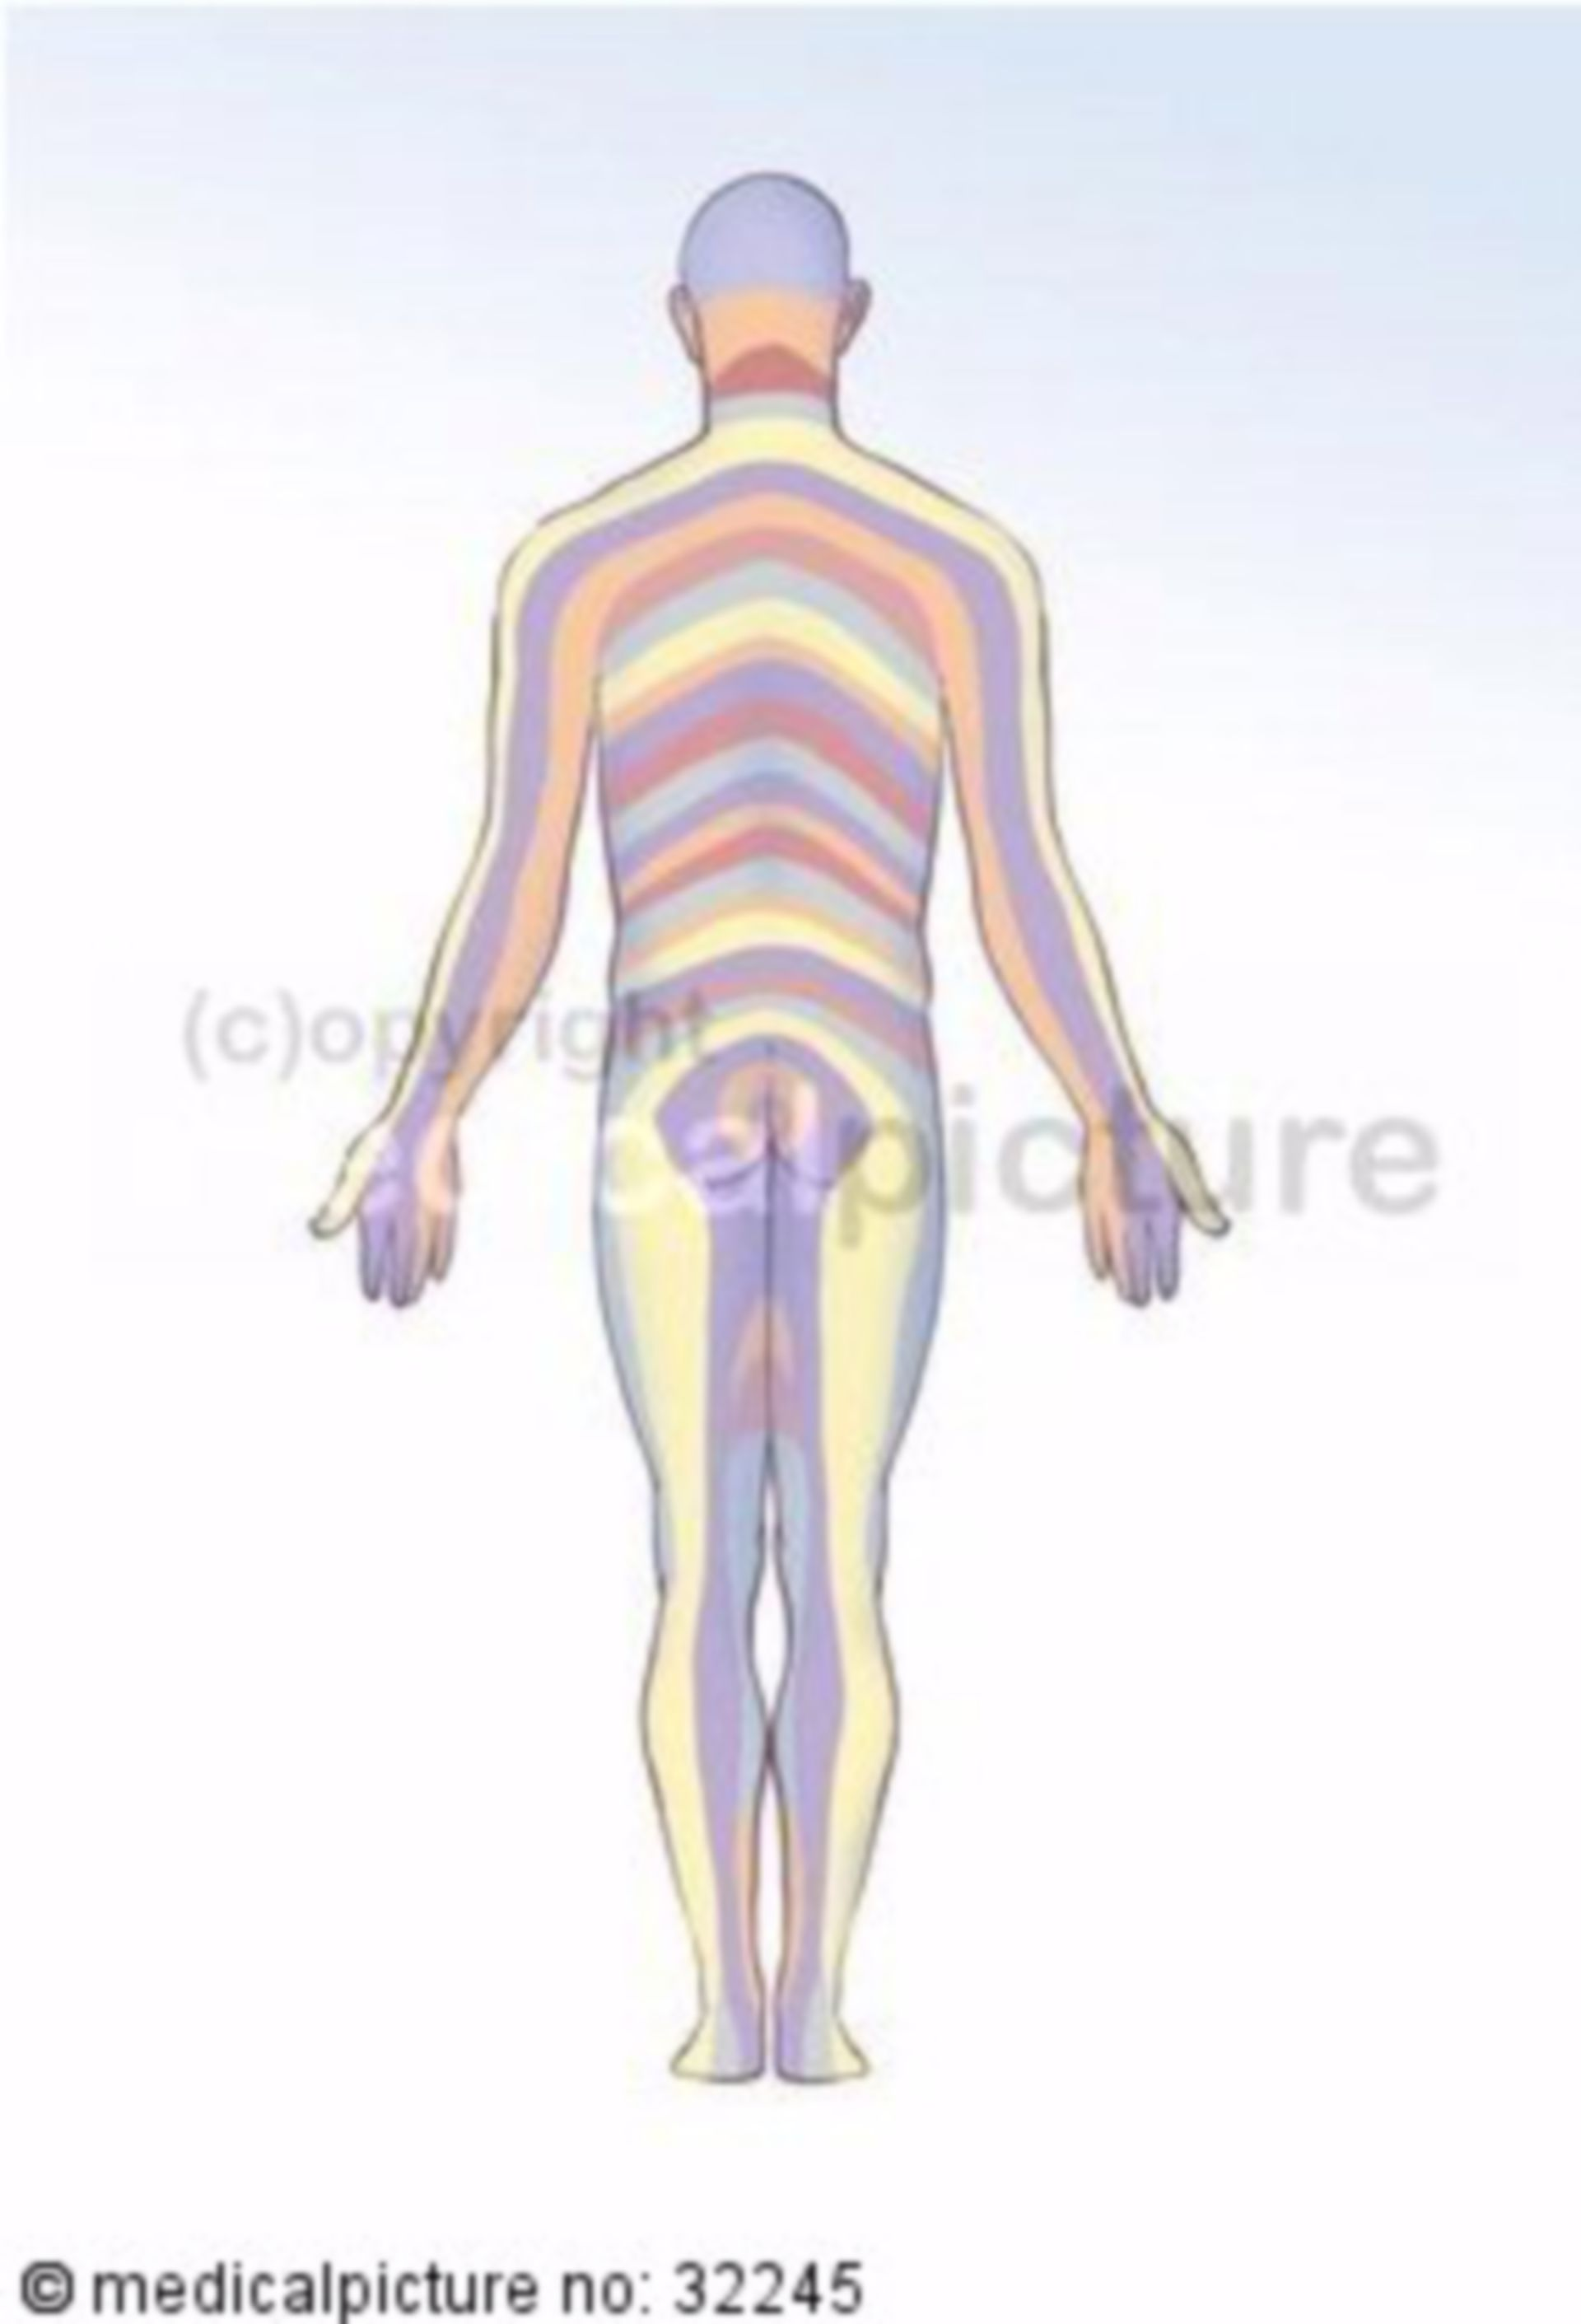 Dermatomes, Sensitive Areas of Innervation of Different Spinal Nerves